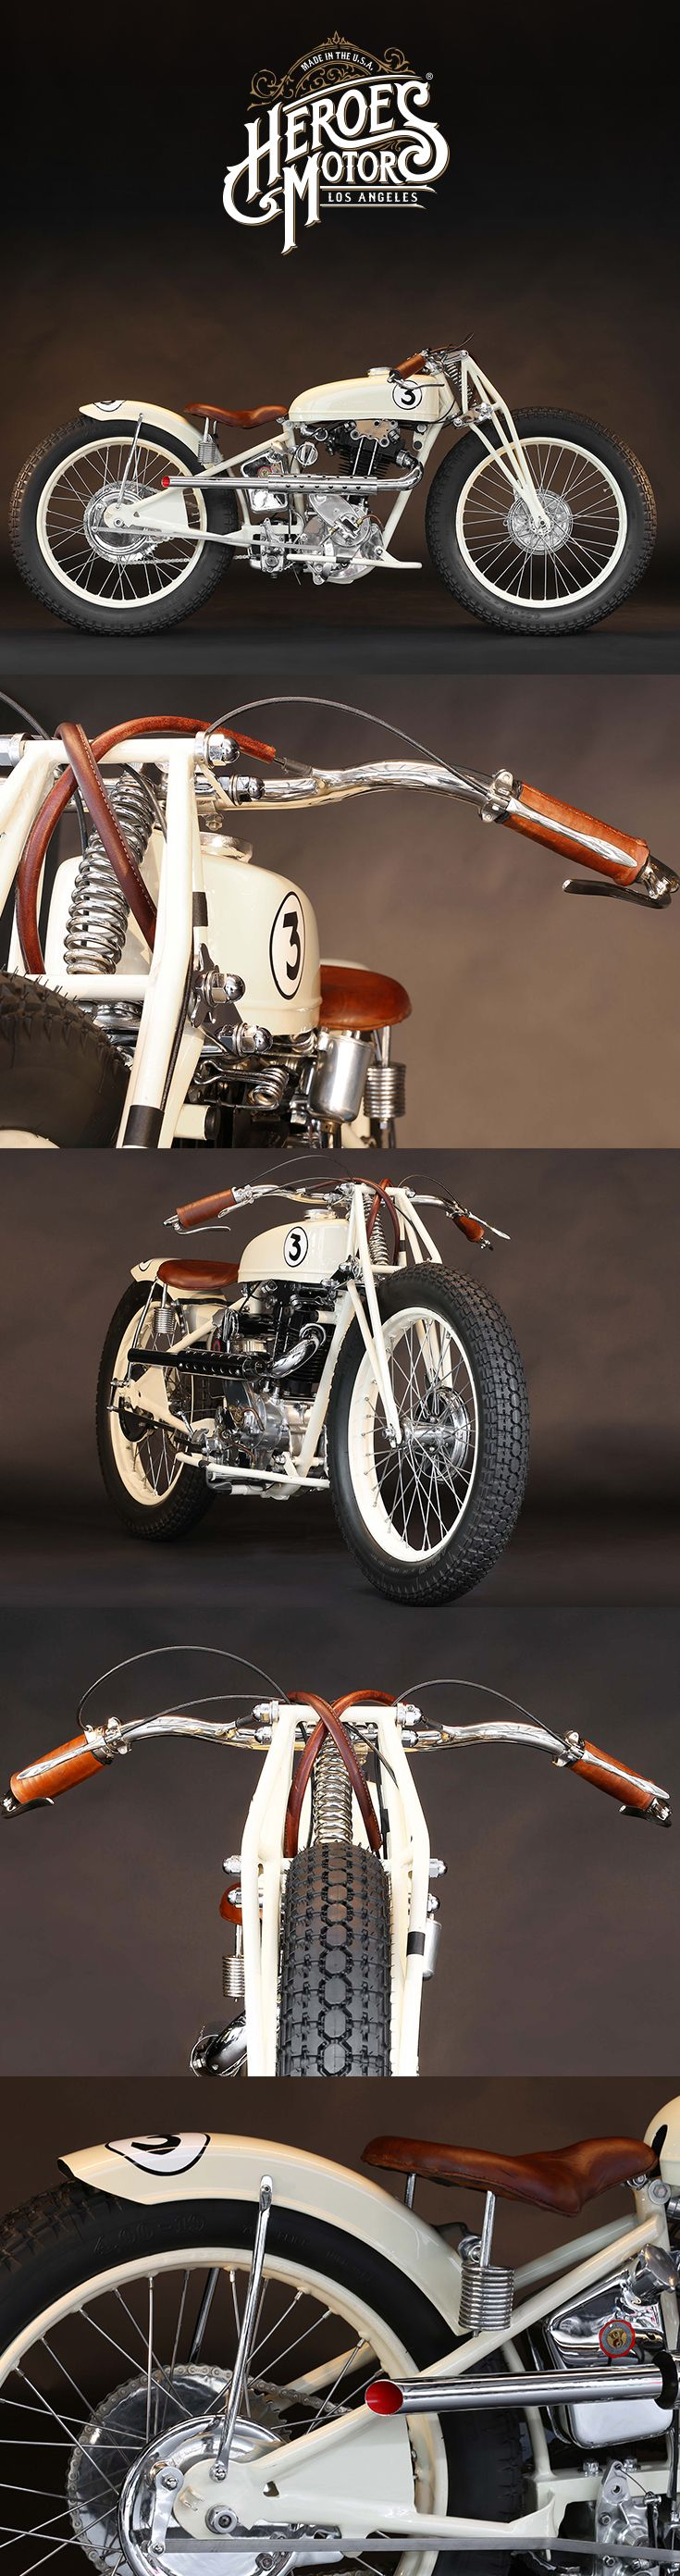 1936 Koehler-Escoffier 350cc racer motorcycle   France   Photography by Serge Bueno